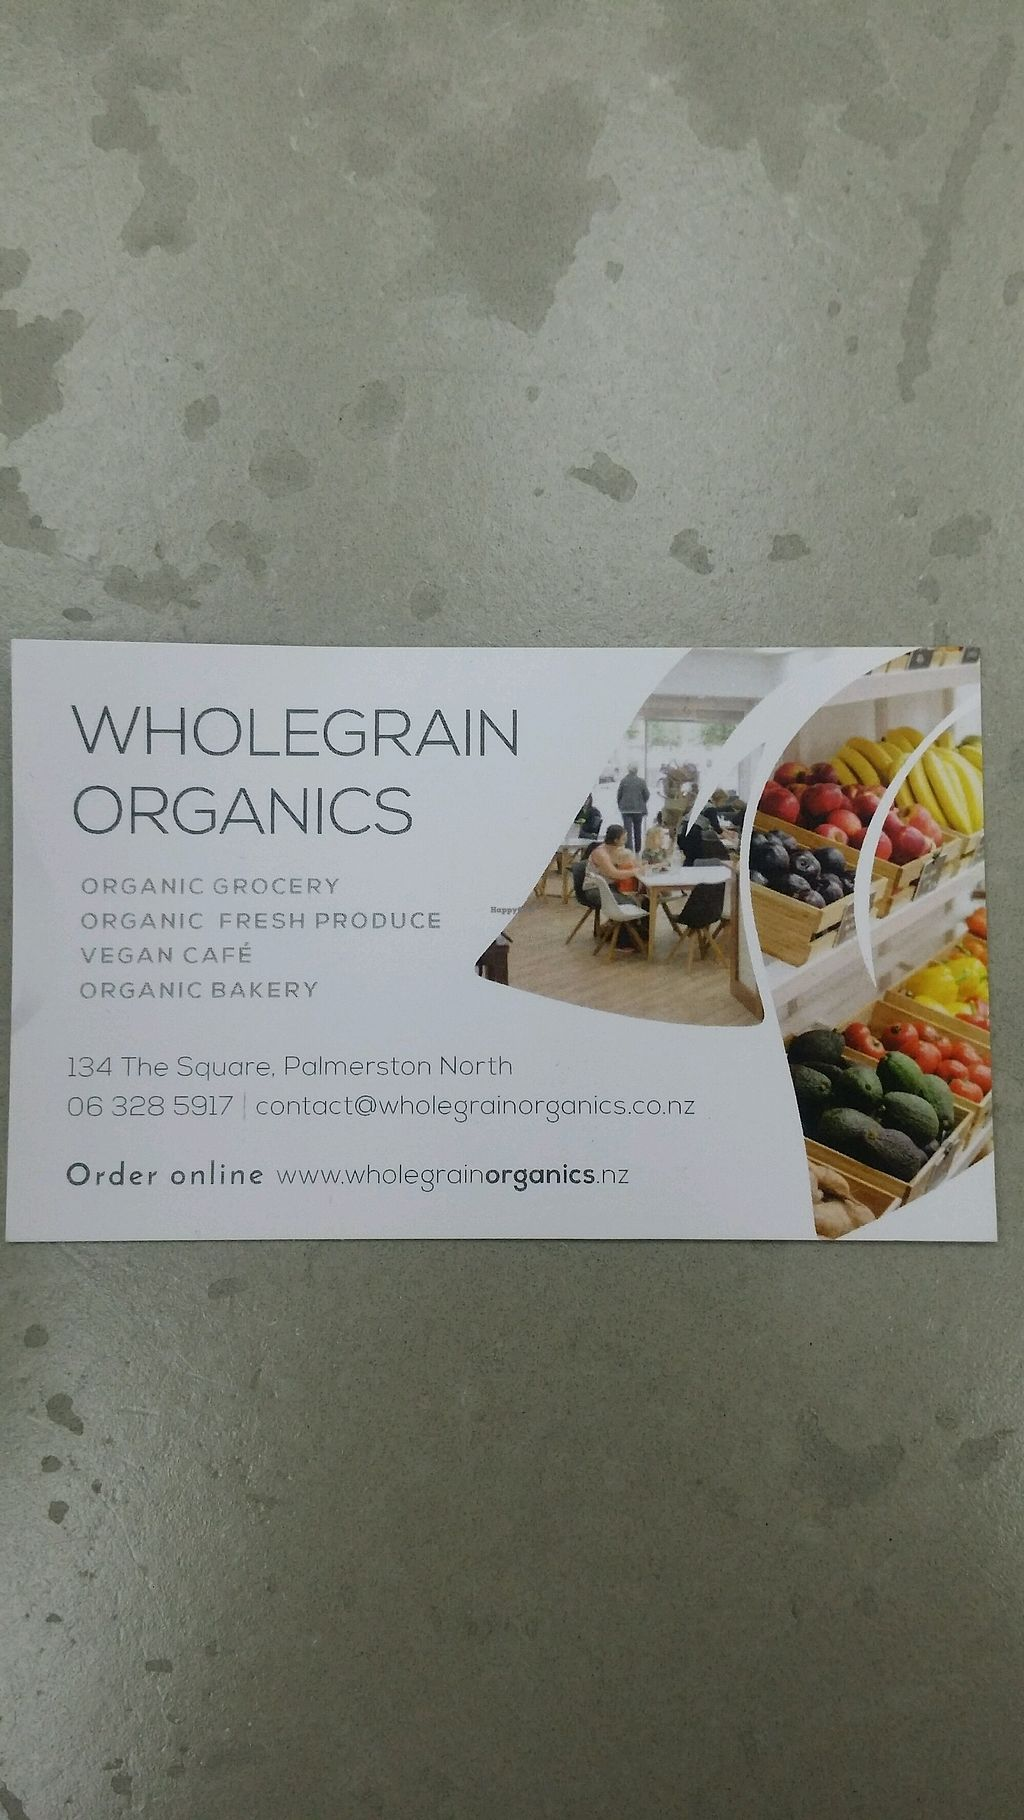 """Photo of Wholegrain Organics  by <a href=""""/members/profile/Loola"""">Loola</a> <br/>contacts <br/> February 18, 2018  - <a href='/contact/abuse/image/90377/361018'>Report</a>"""